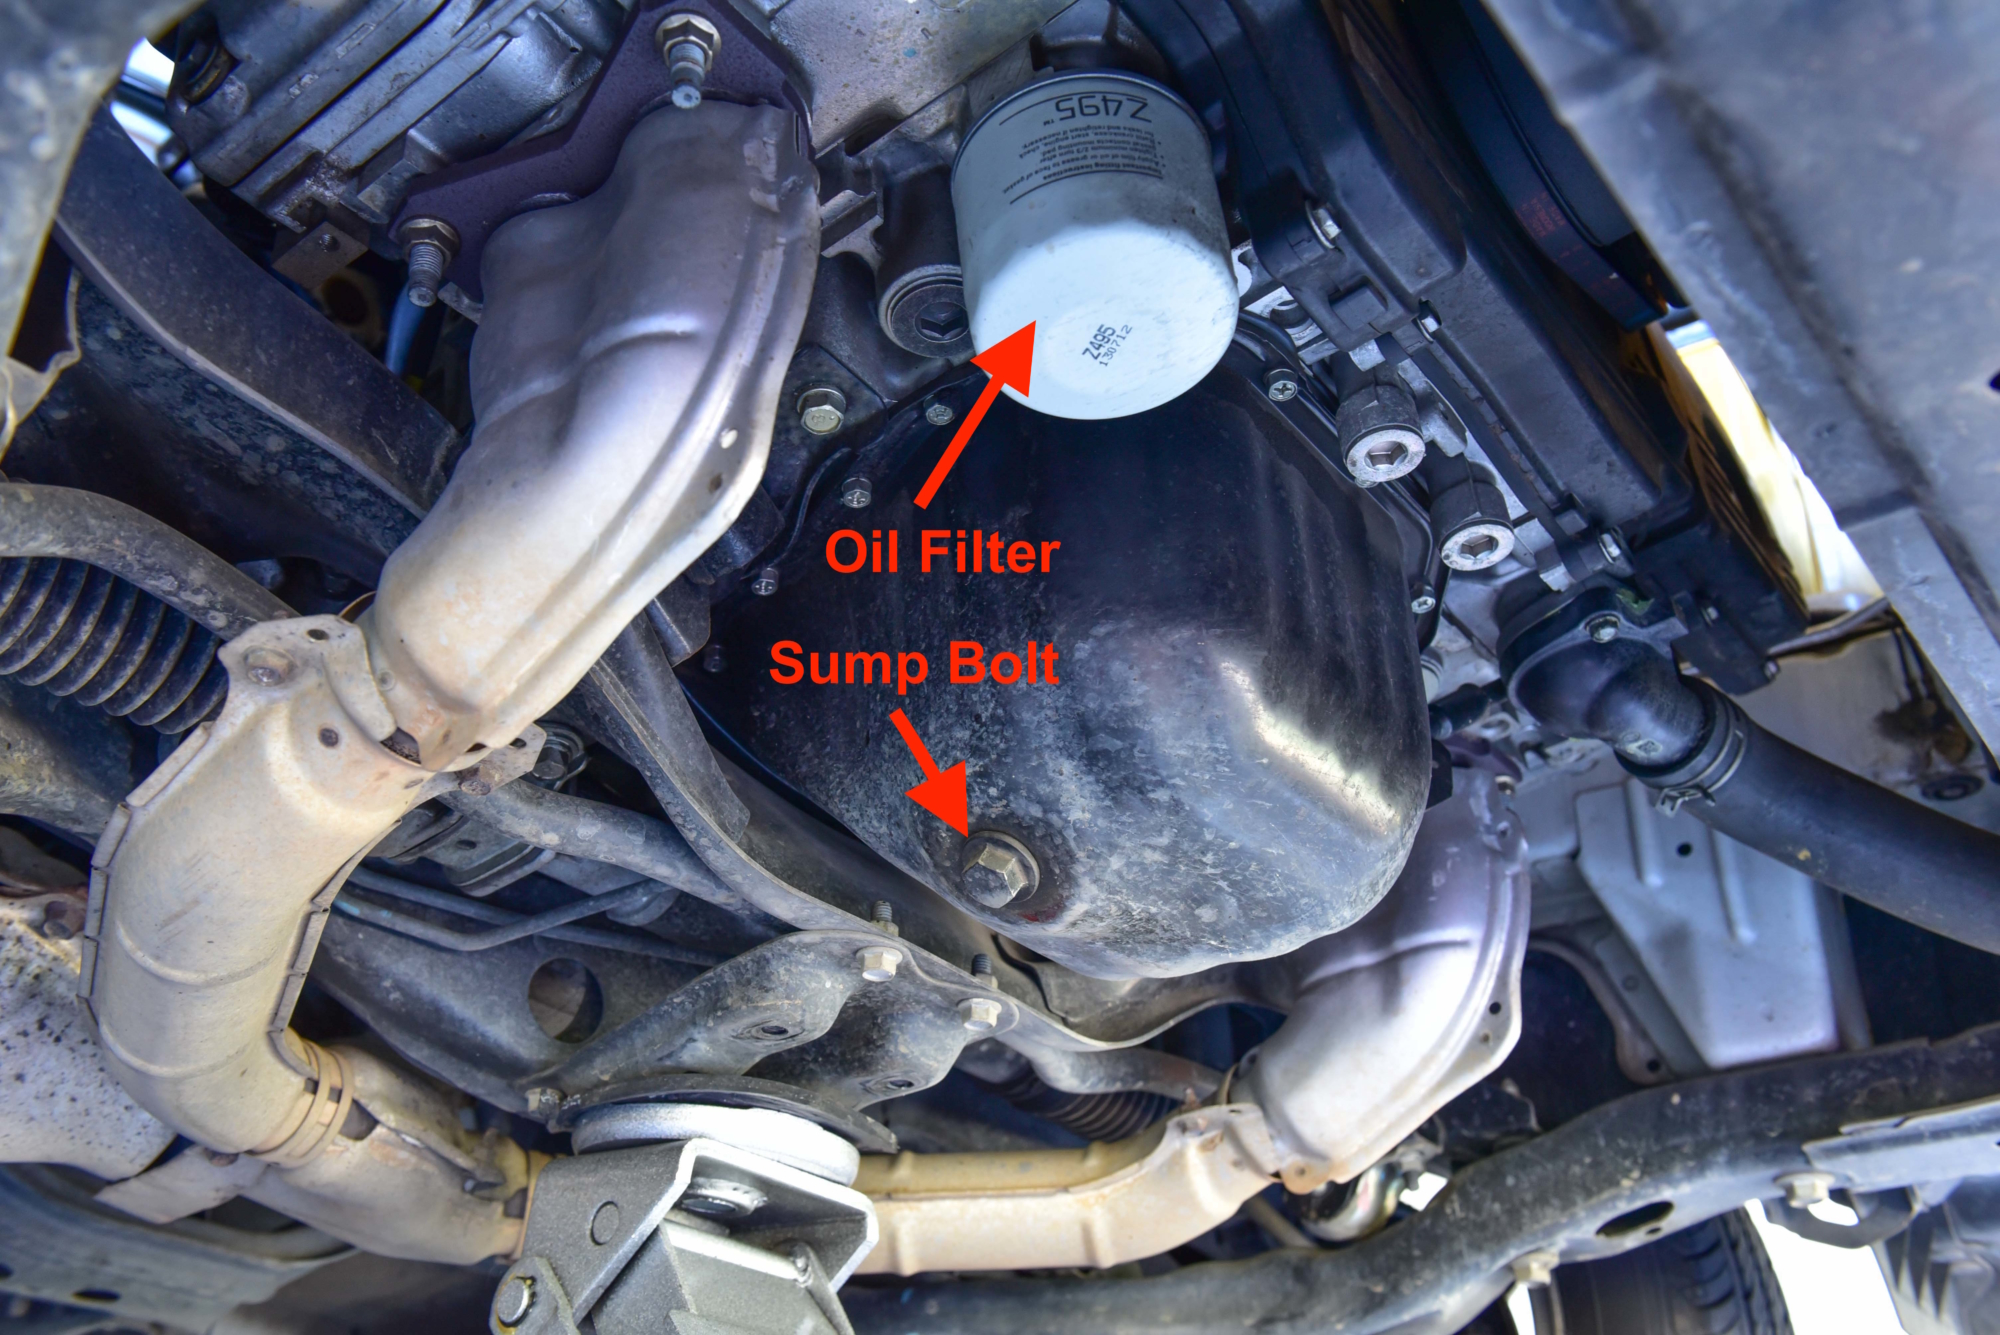 2011 subaru impreza fuel filter location